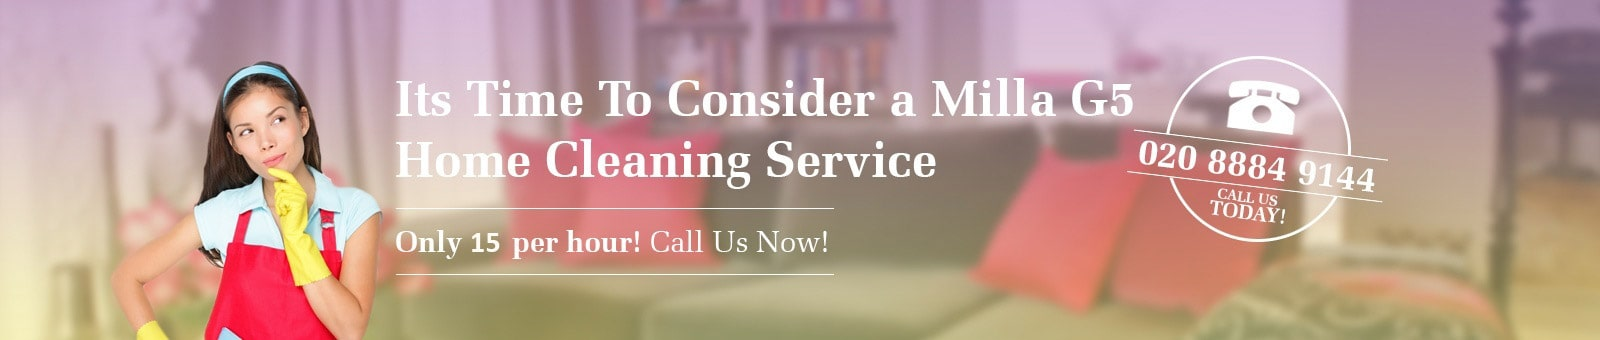 Millag5 Home Cleaning Service Slide